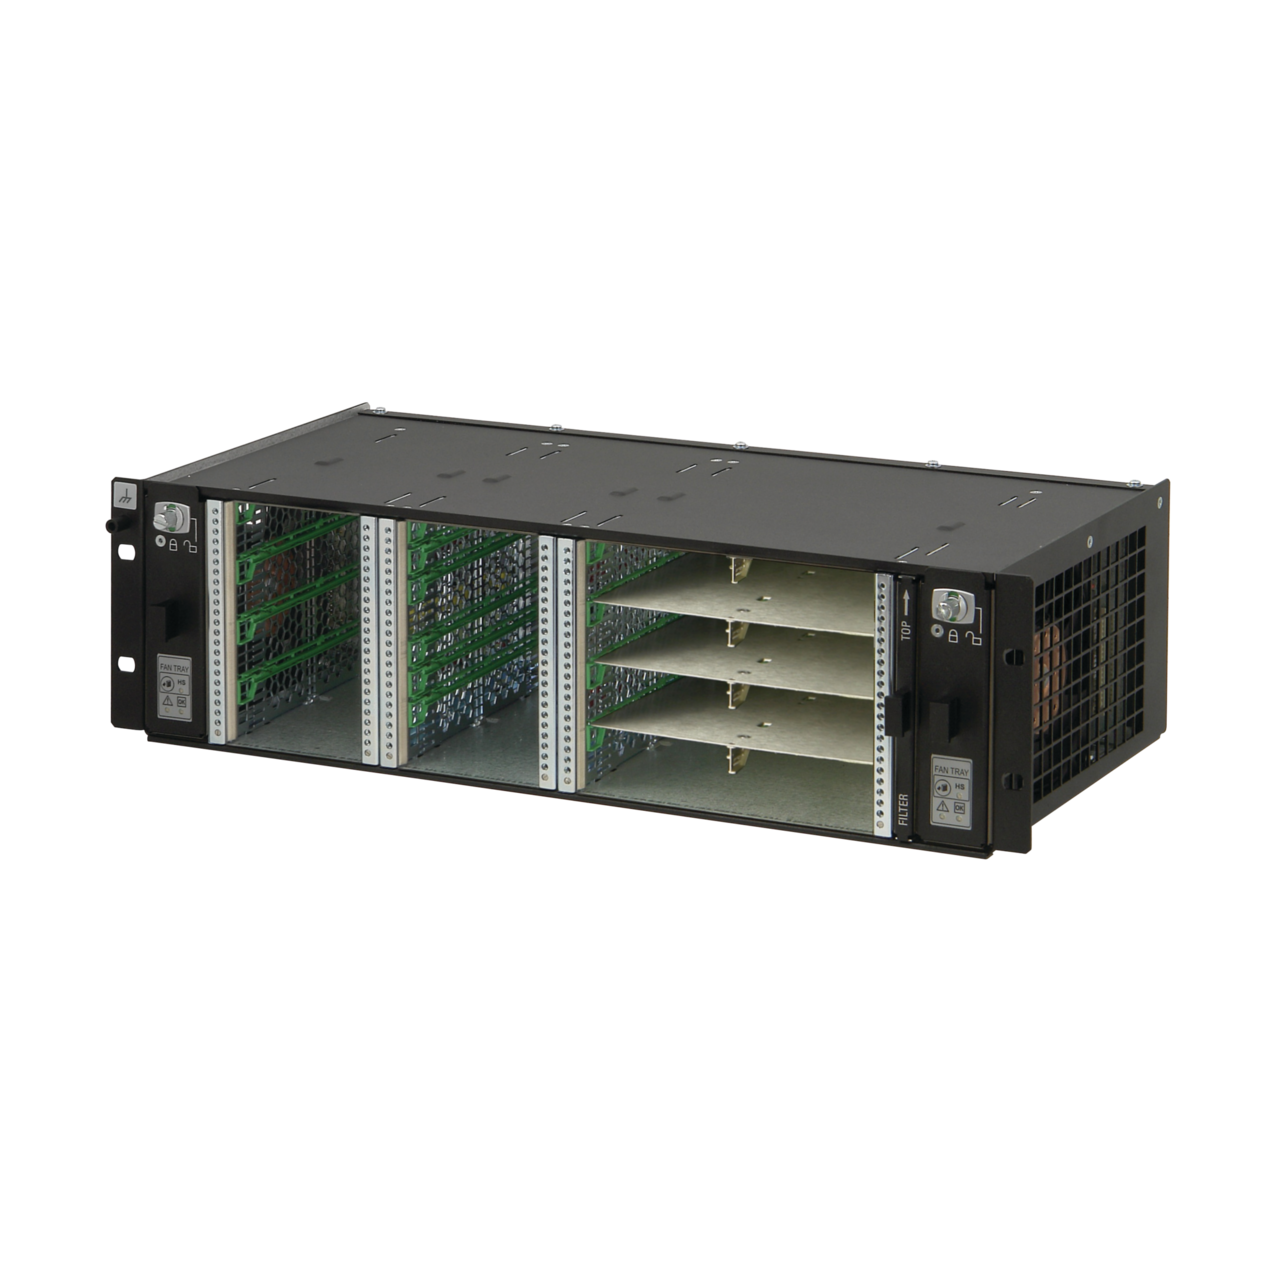 Image for MicroTCA.0  3 U system, for 2 single and 4 double (8 single) full-size AdvancedMC modules from nVent SCHROFF | Europe, Middle East, Africa and India